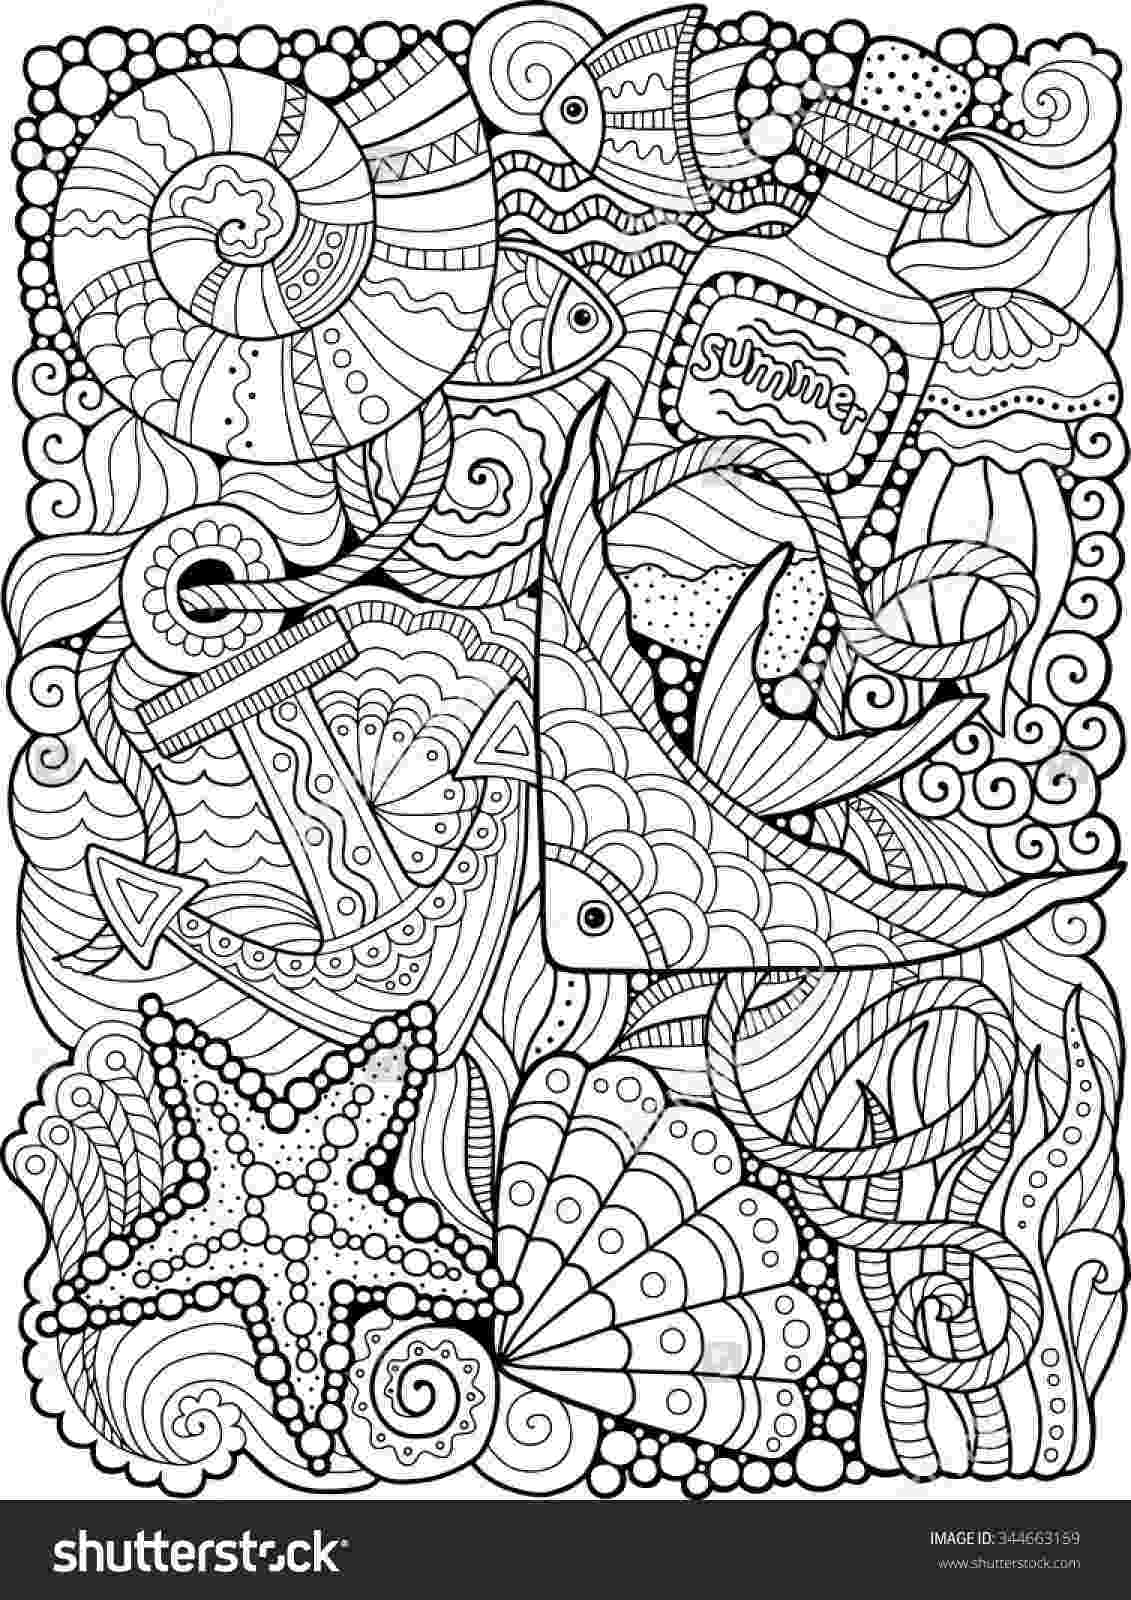 printable summer coloring pages for adults summer day printable adult coloring page from favoreads etsy printable for summer coloring pages adults